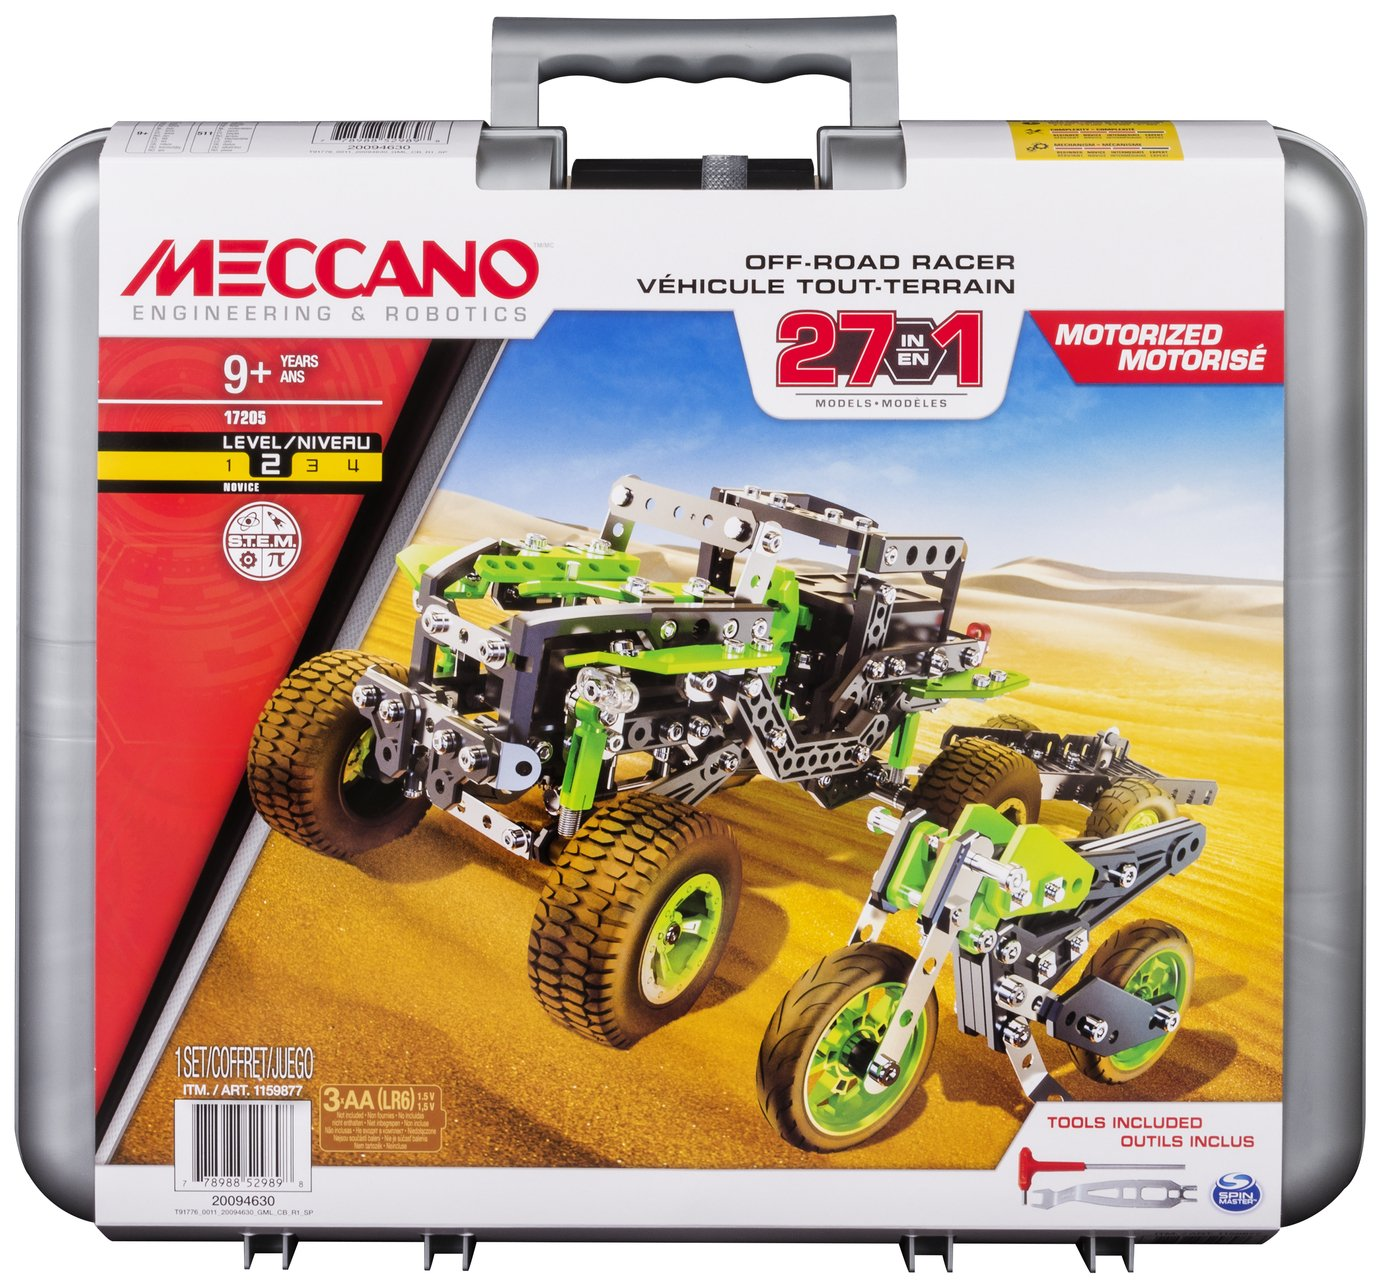 Image of Meccano 27-in-1 Off Road Racers